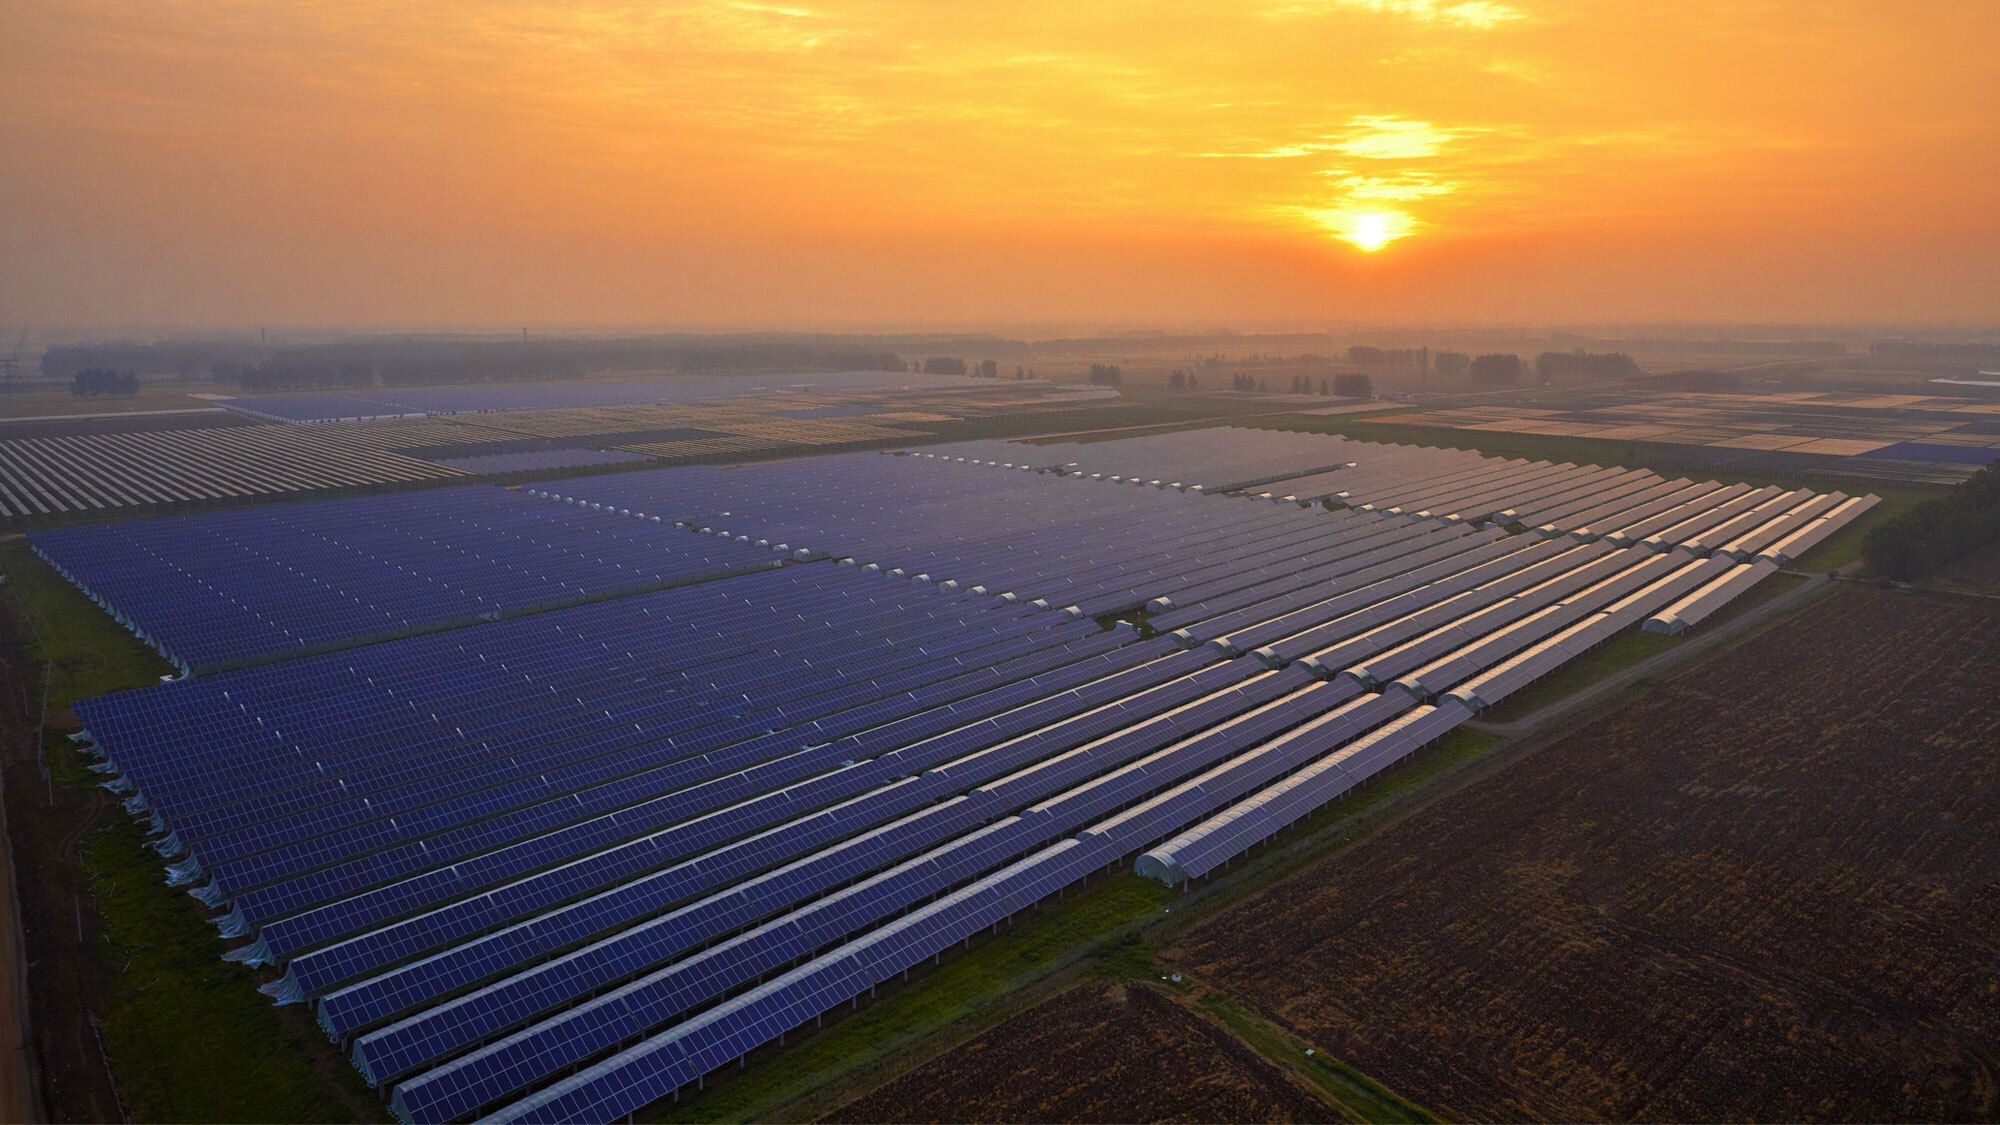 Solar Farm with sunset